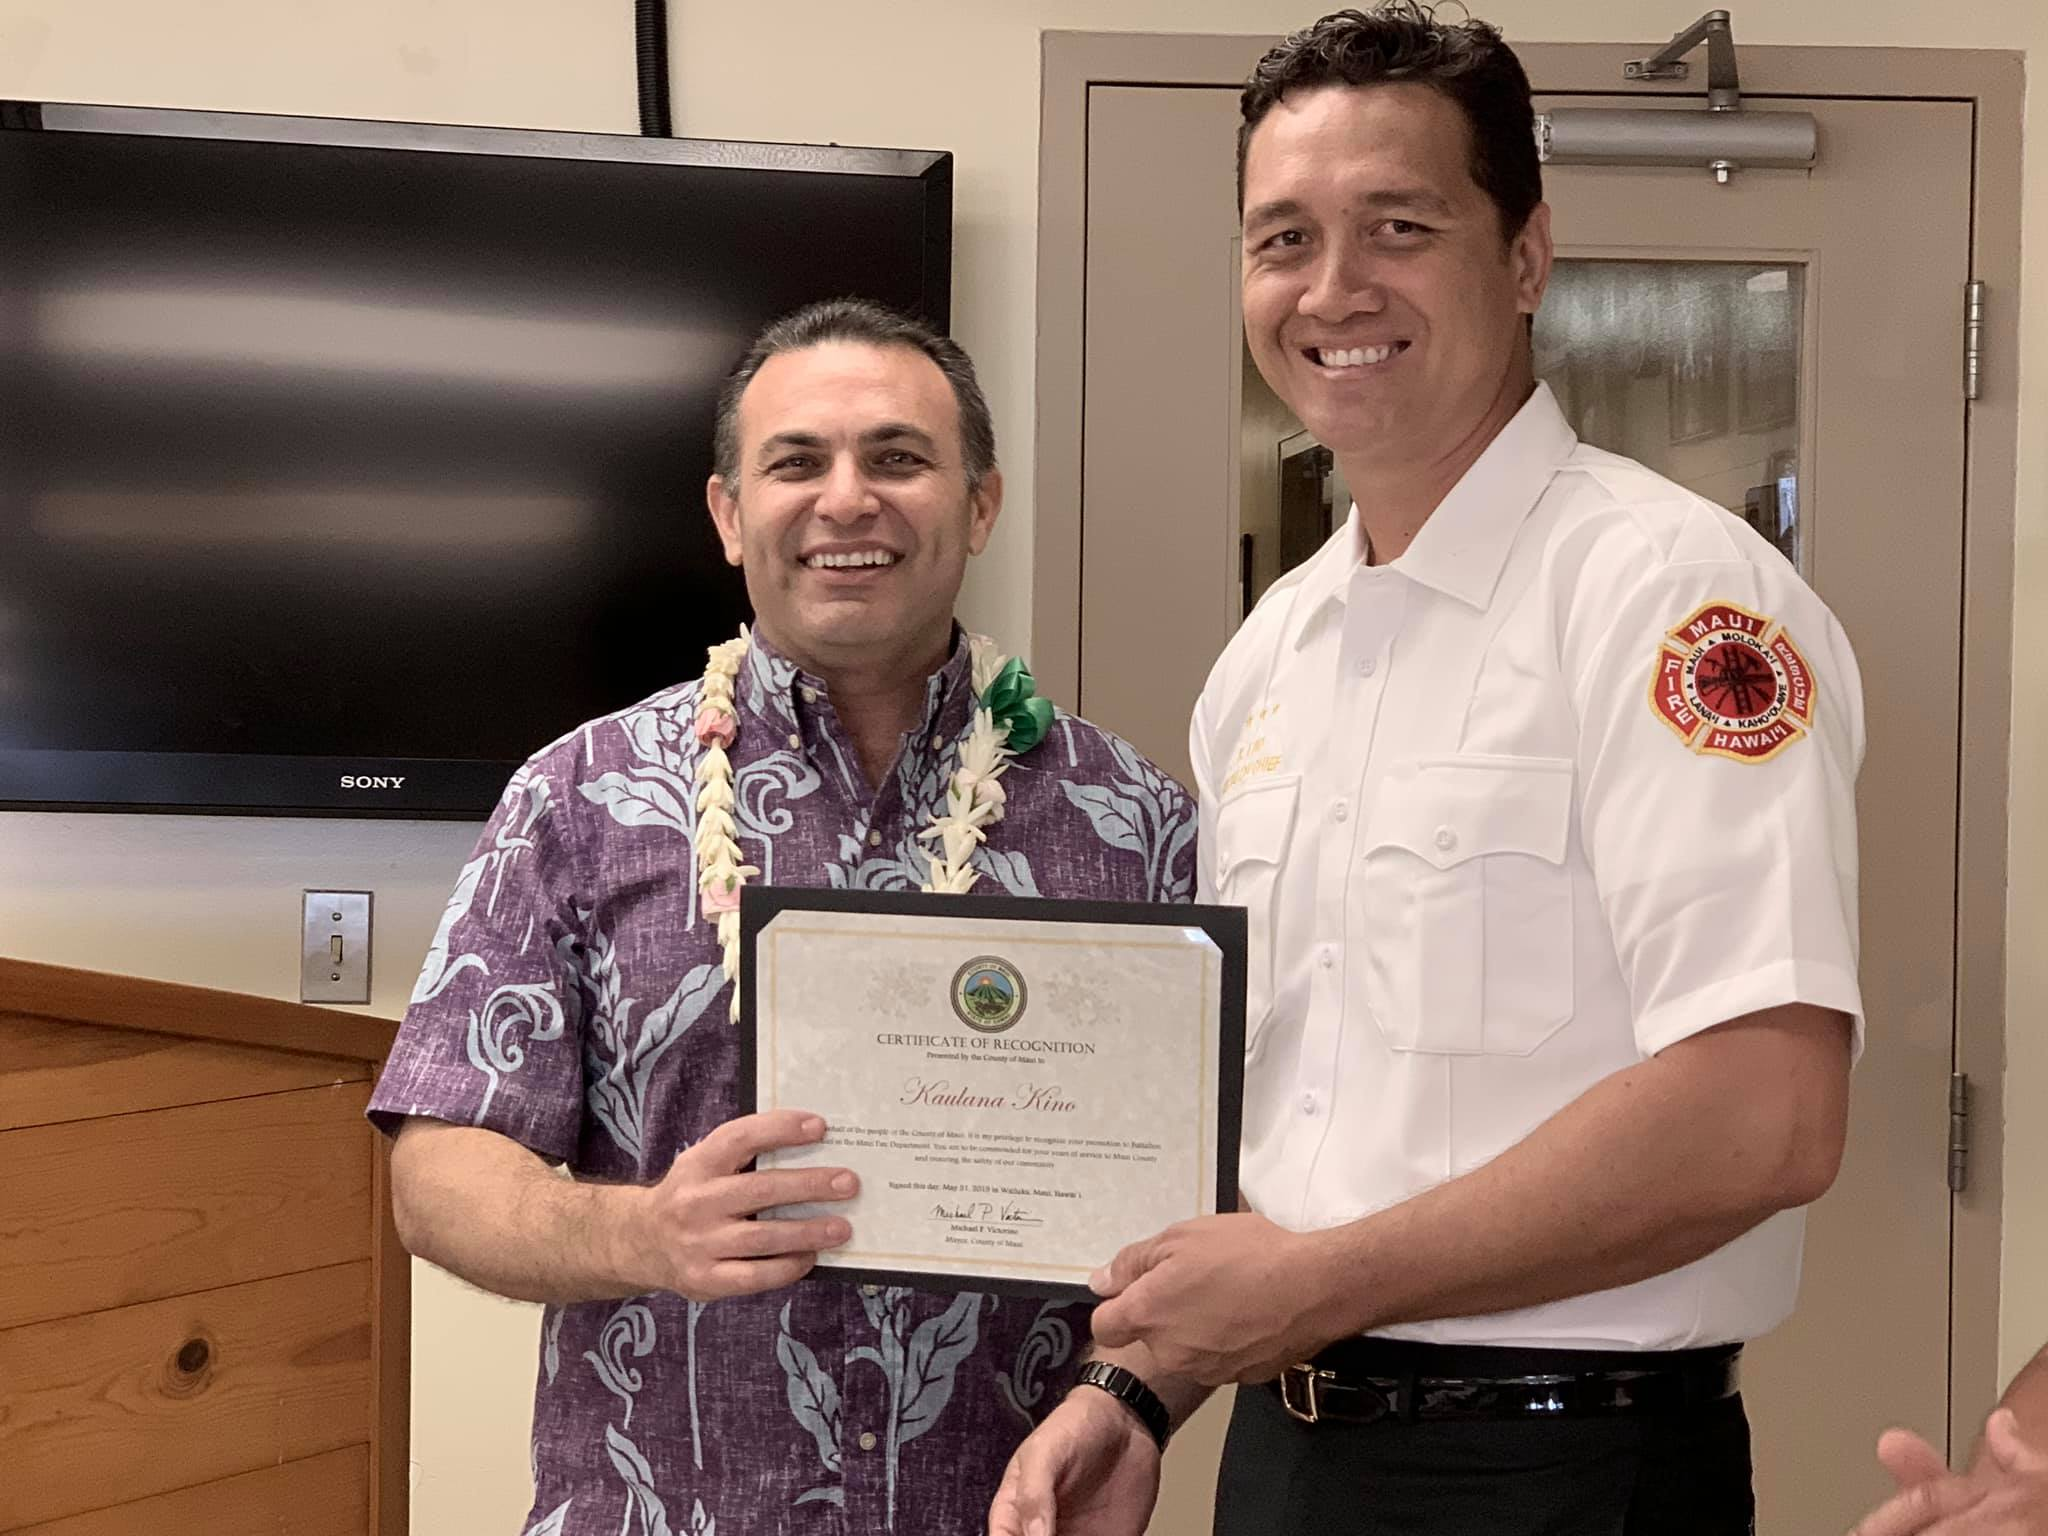 Maui Fire Dept Promotes Kino to Battalion Chief